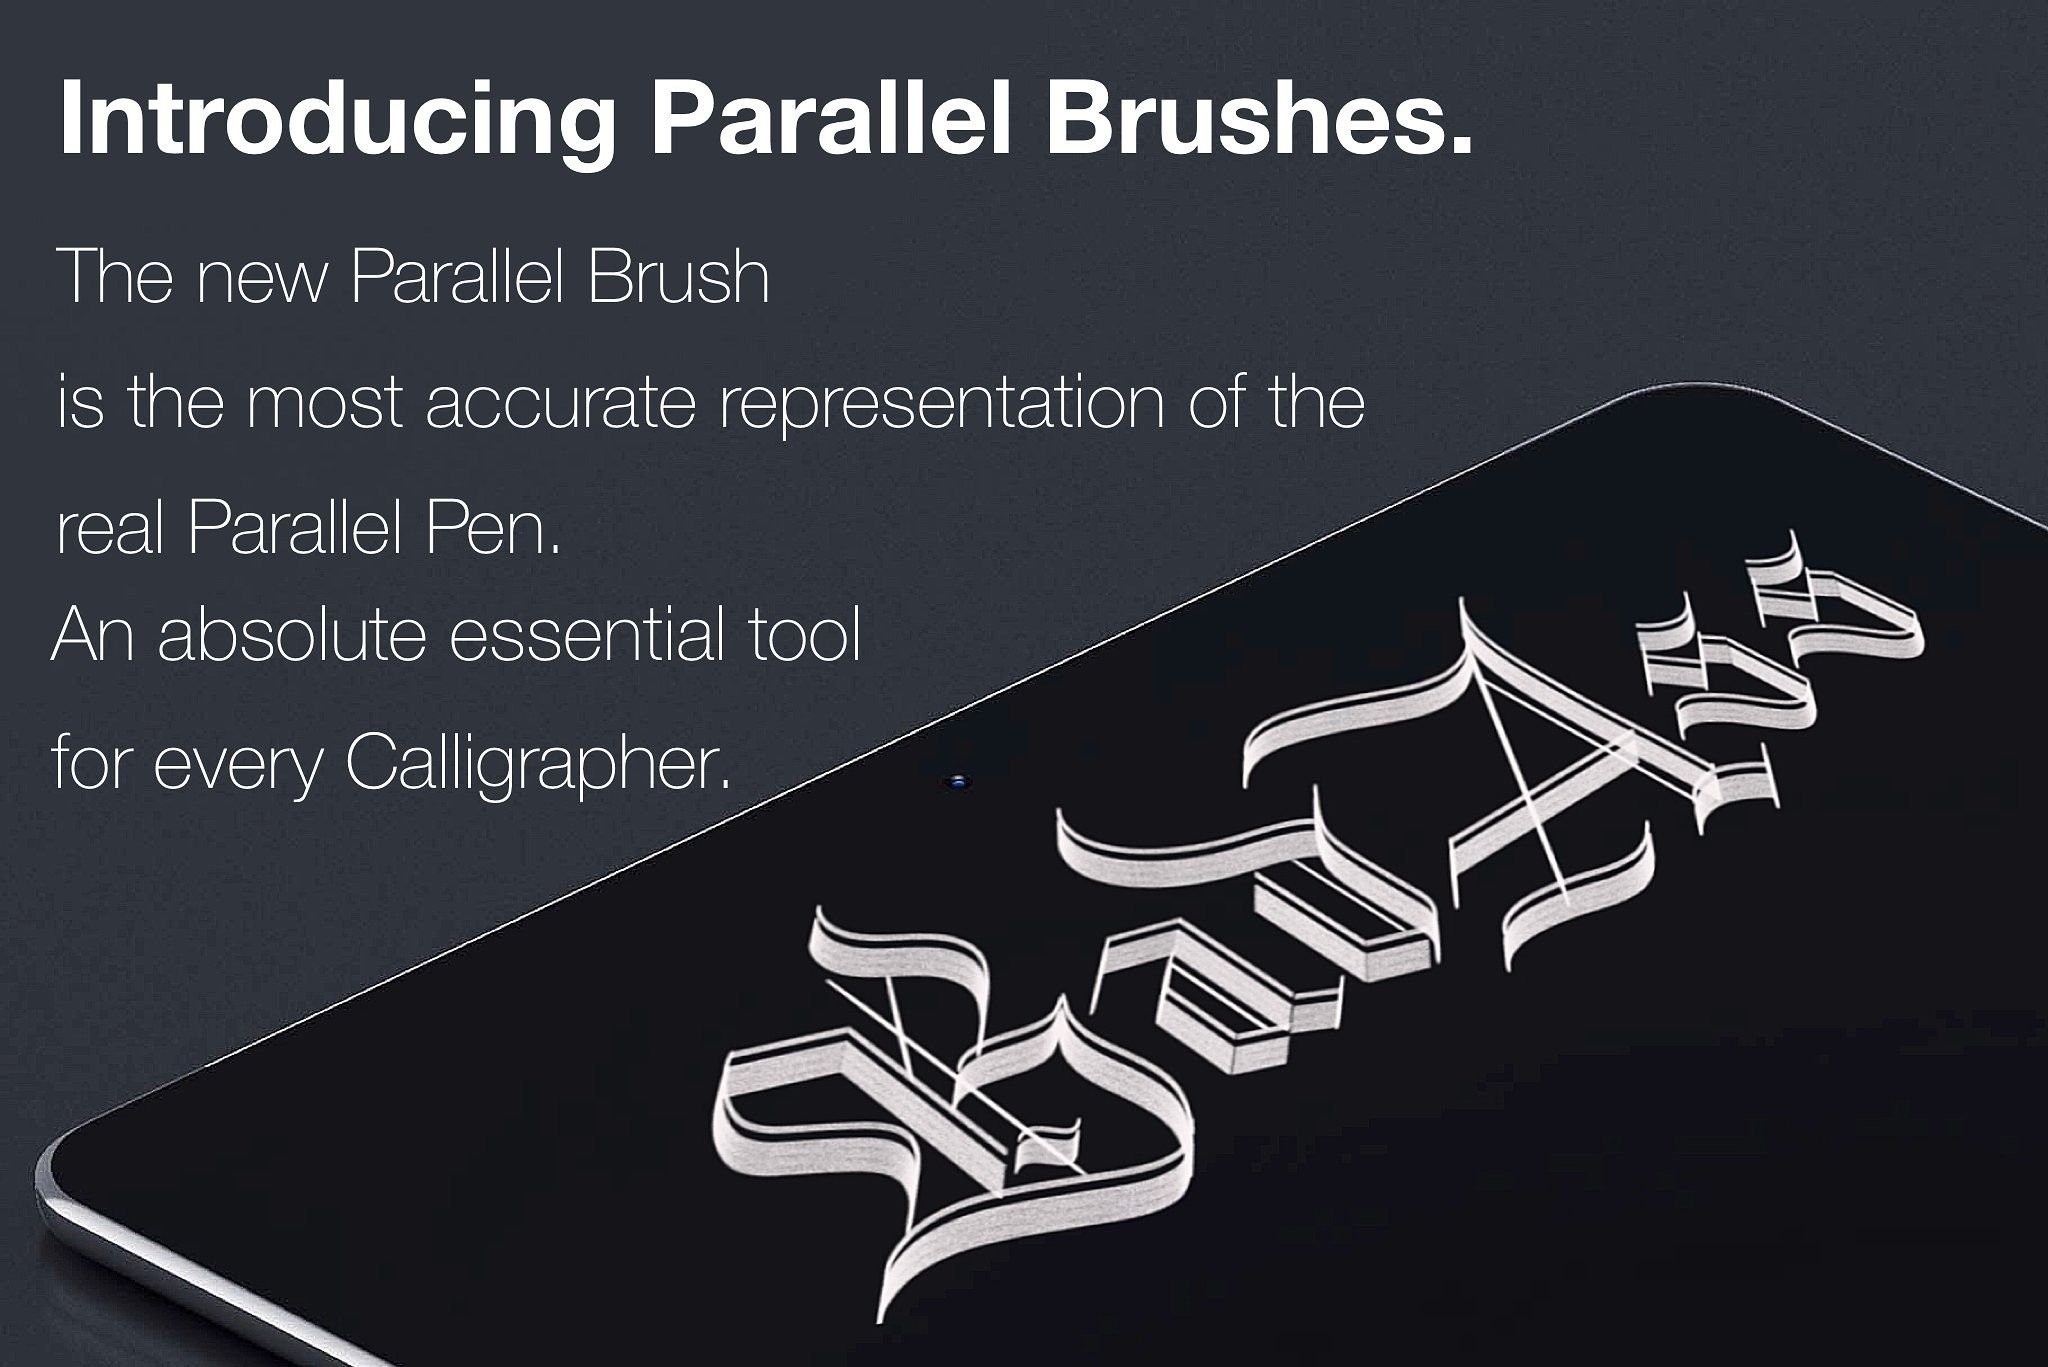 Procreate Parallel Brushes! #pressure#Pencil#Apple#sensitive